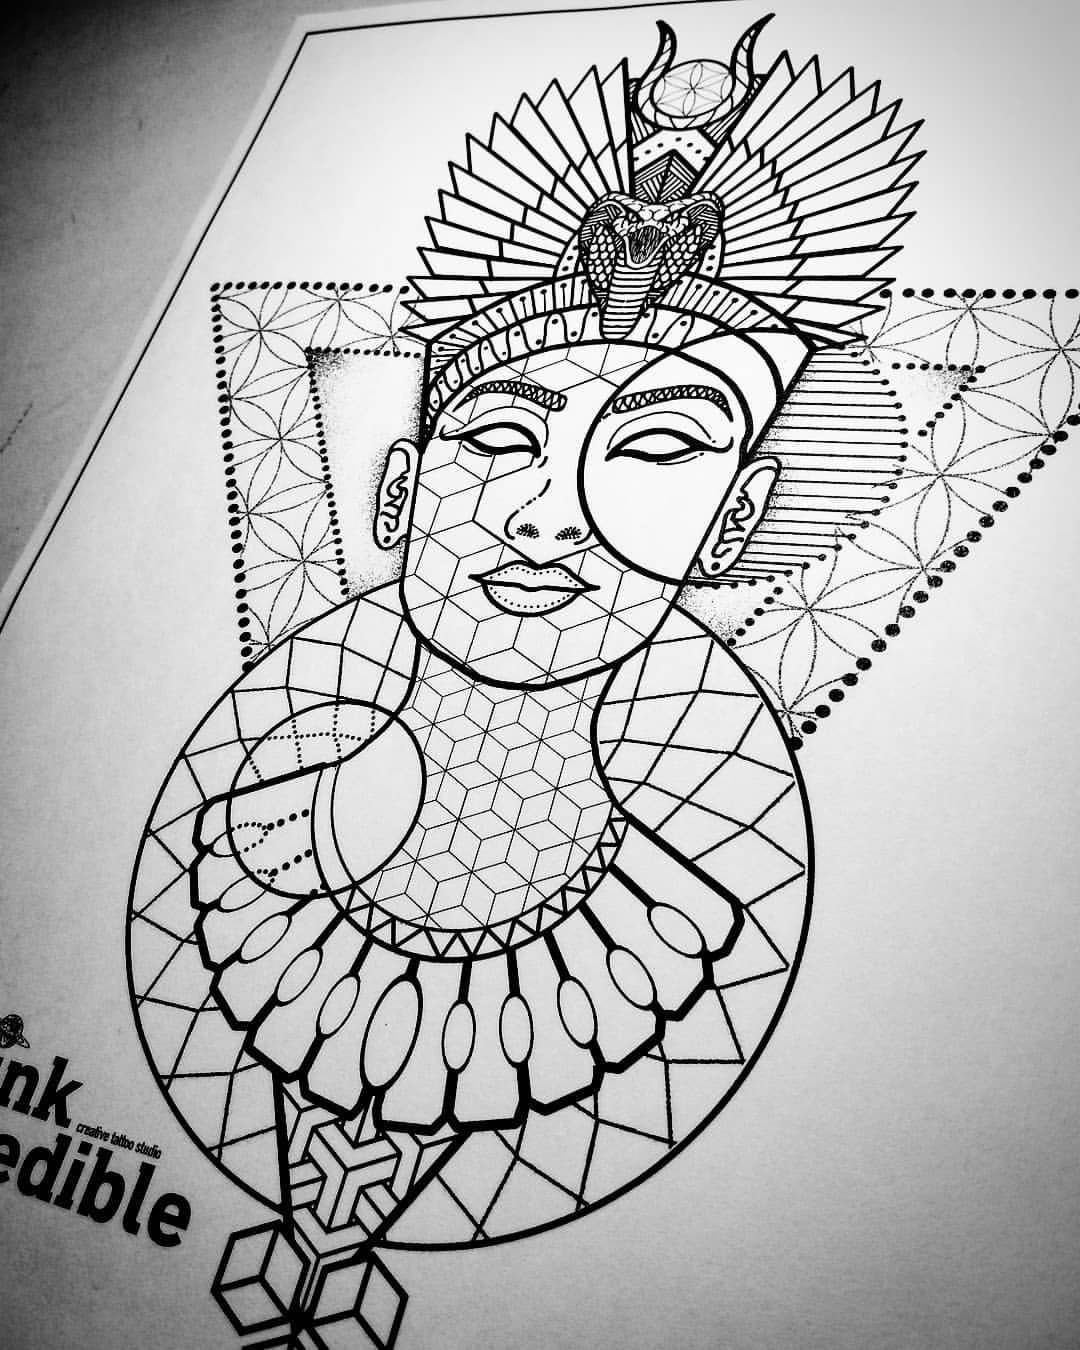 Tattoo Outline Drawing Stencil Tattoo Outline In 2020 Egyptian Drawings Egypt Tattoo Egyptian Tattoo